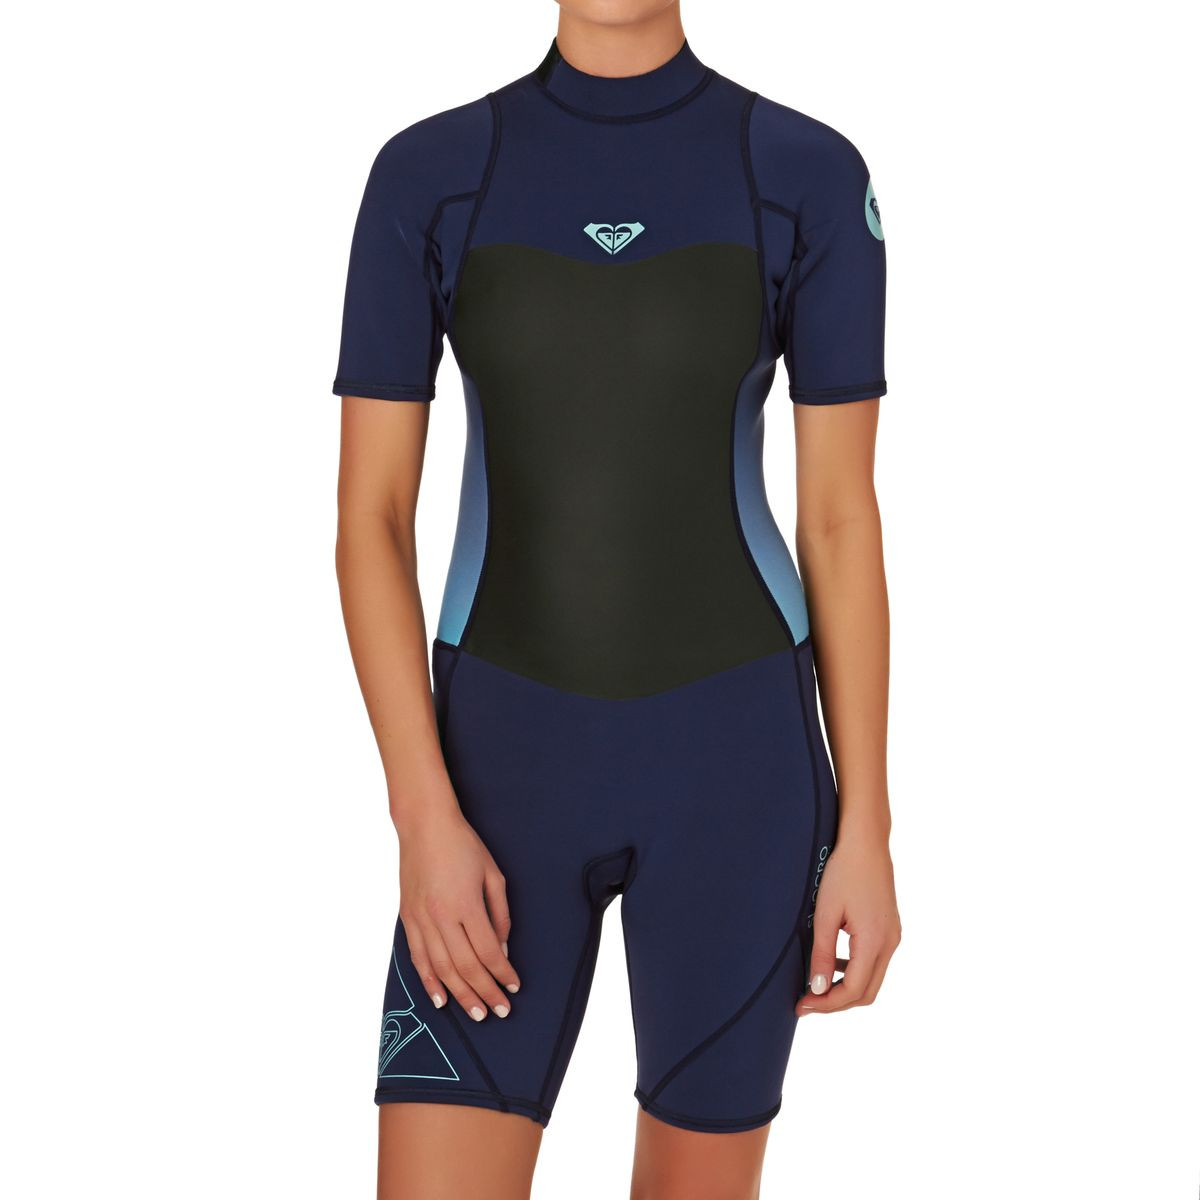 Roxy Womens Syncro 2mm Back Zip Short Sleeve Shorty Wetsuit - Blue Print